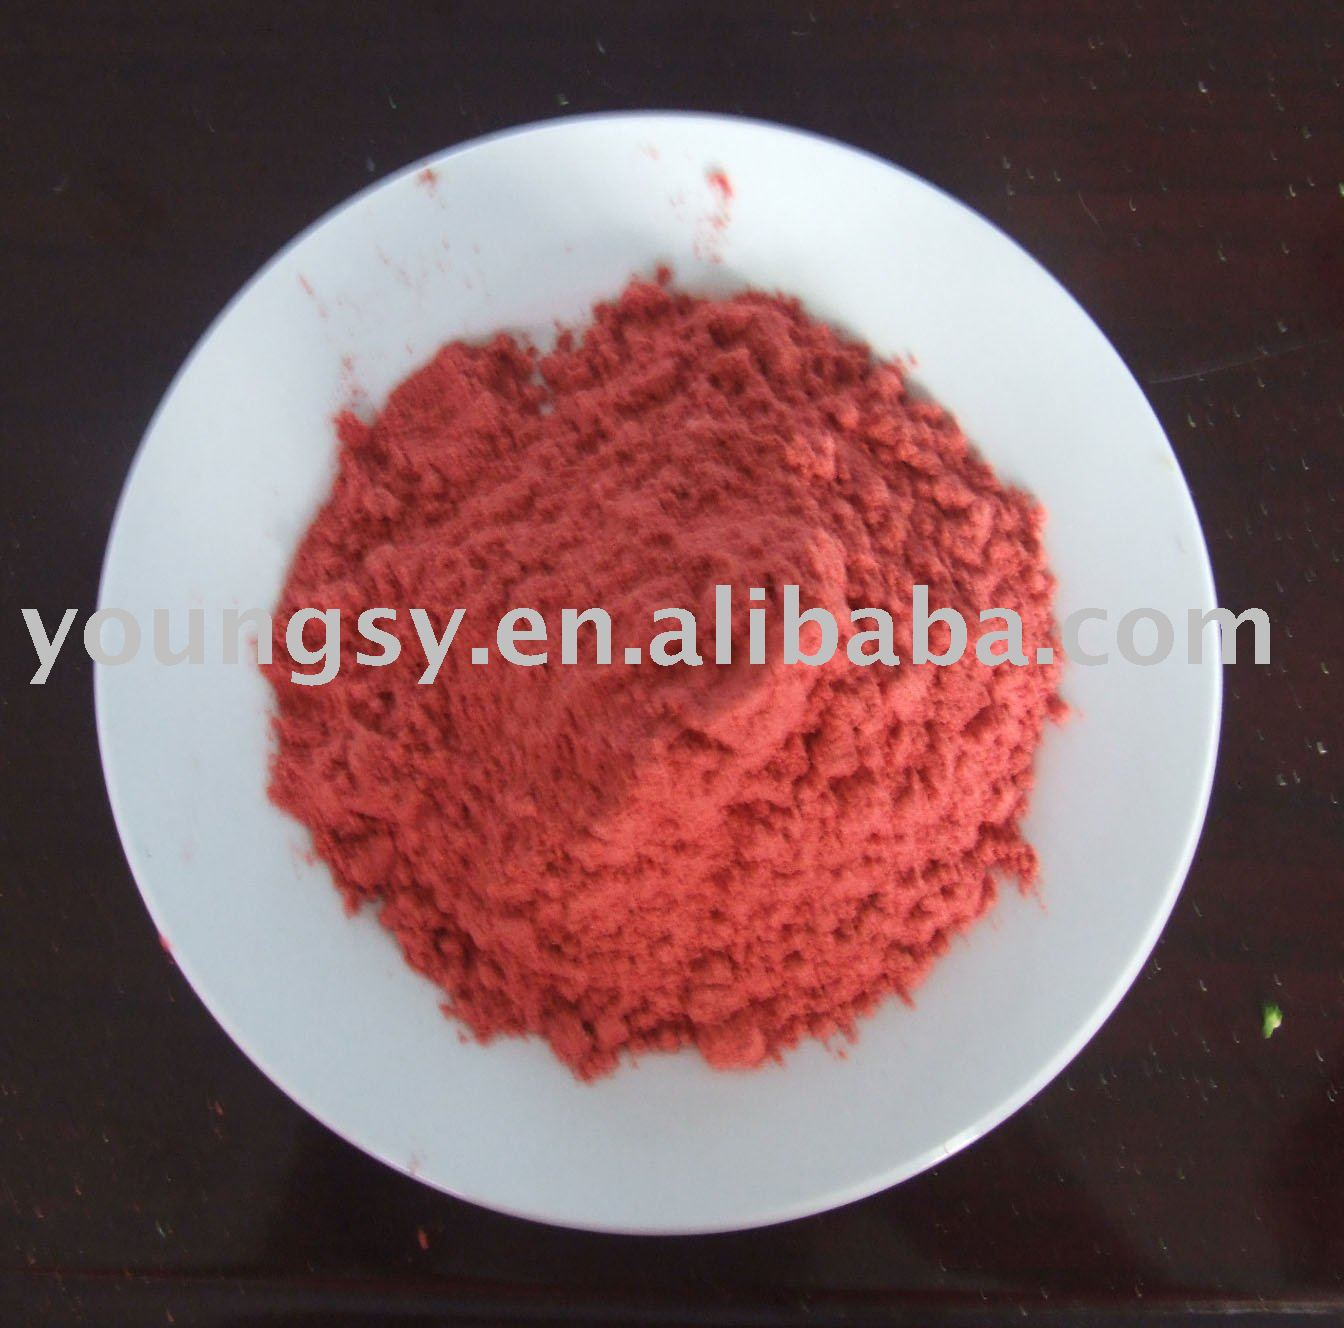 FD strawberry powder/Frozen dried  strawberry powder